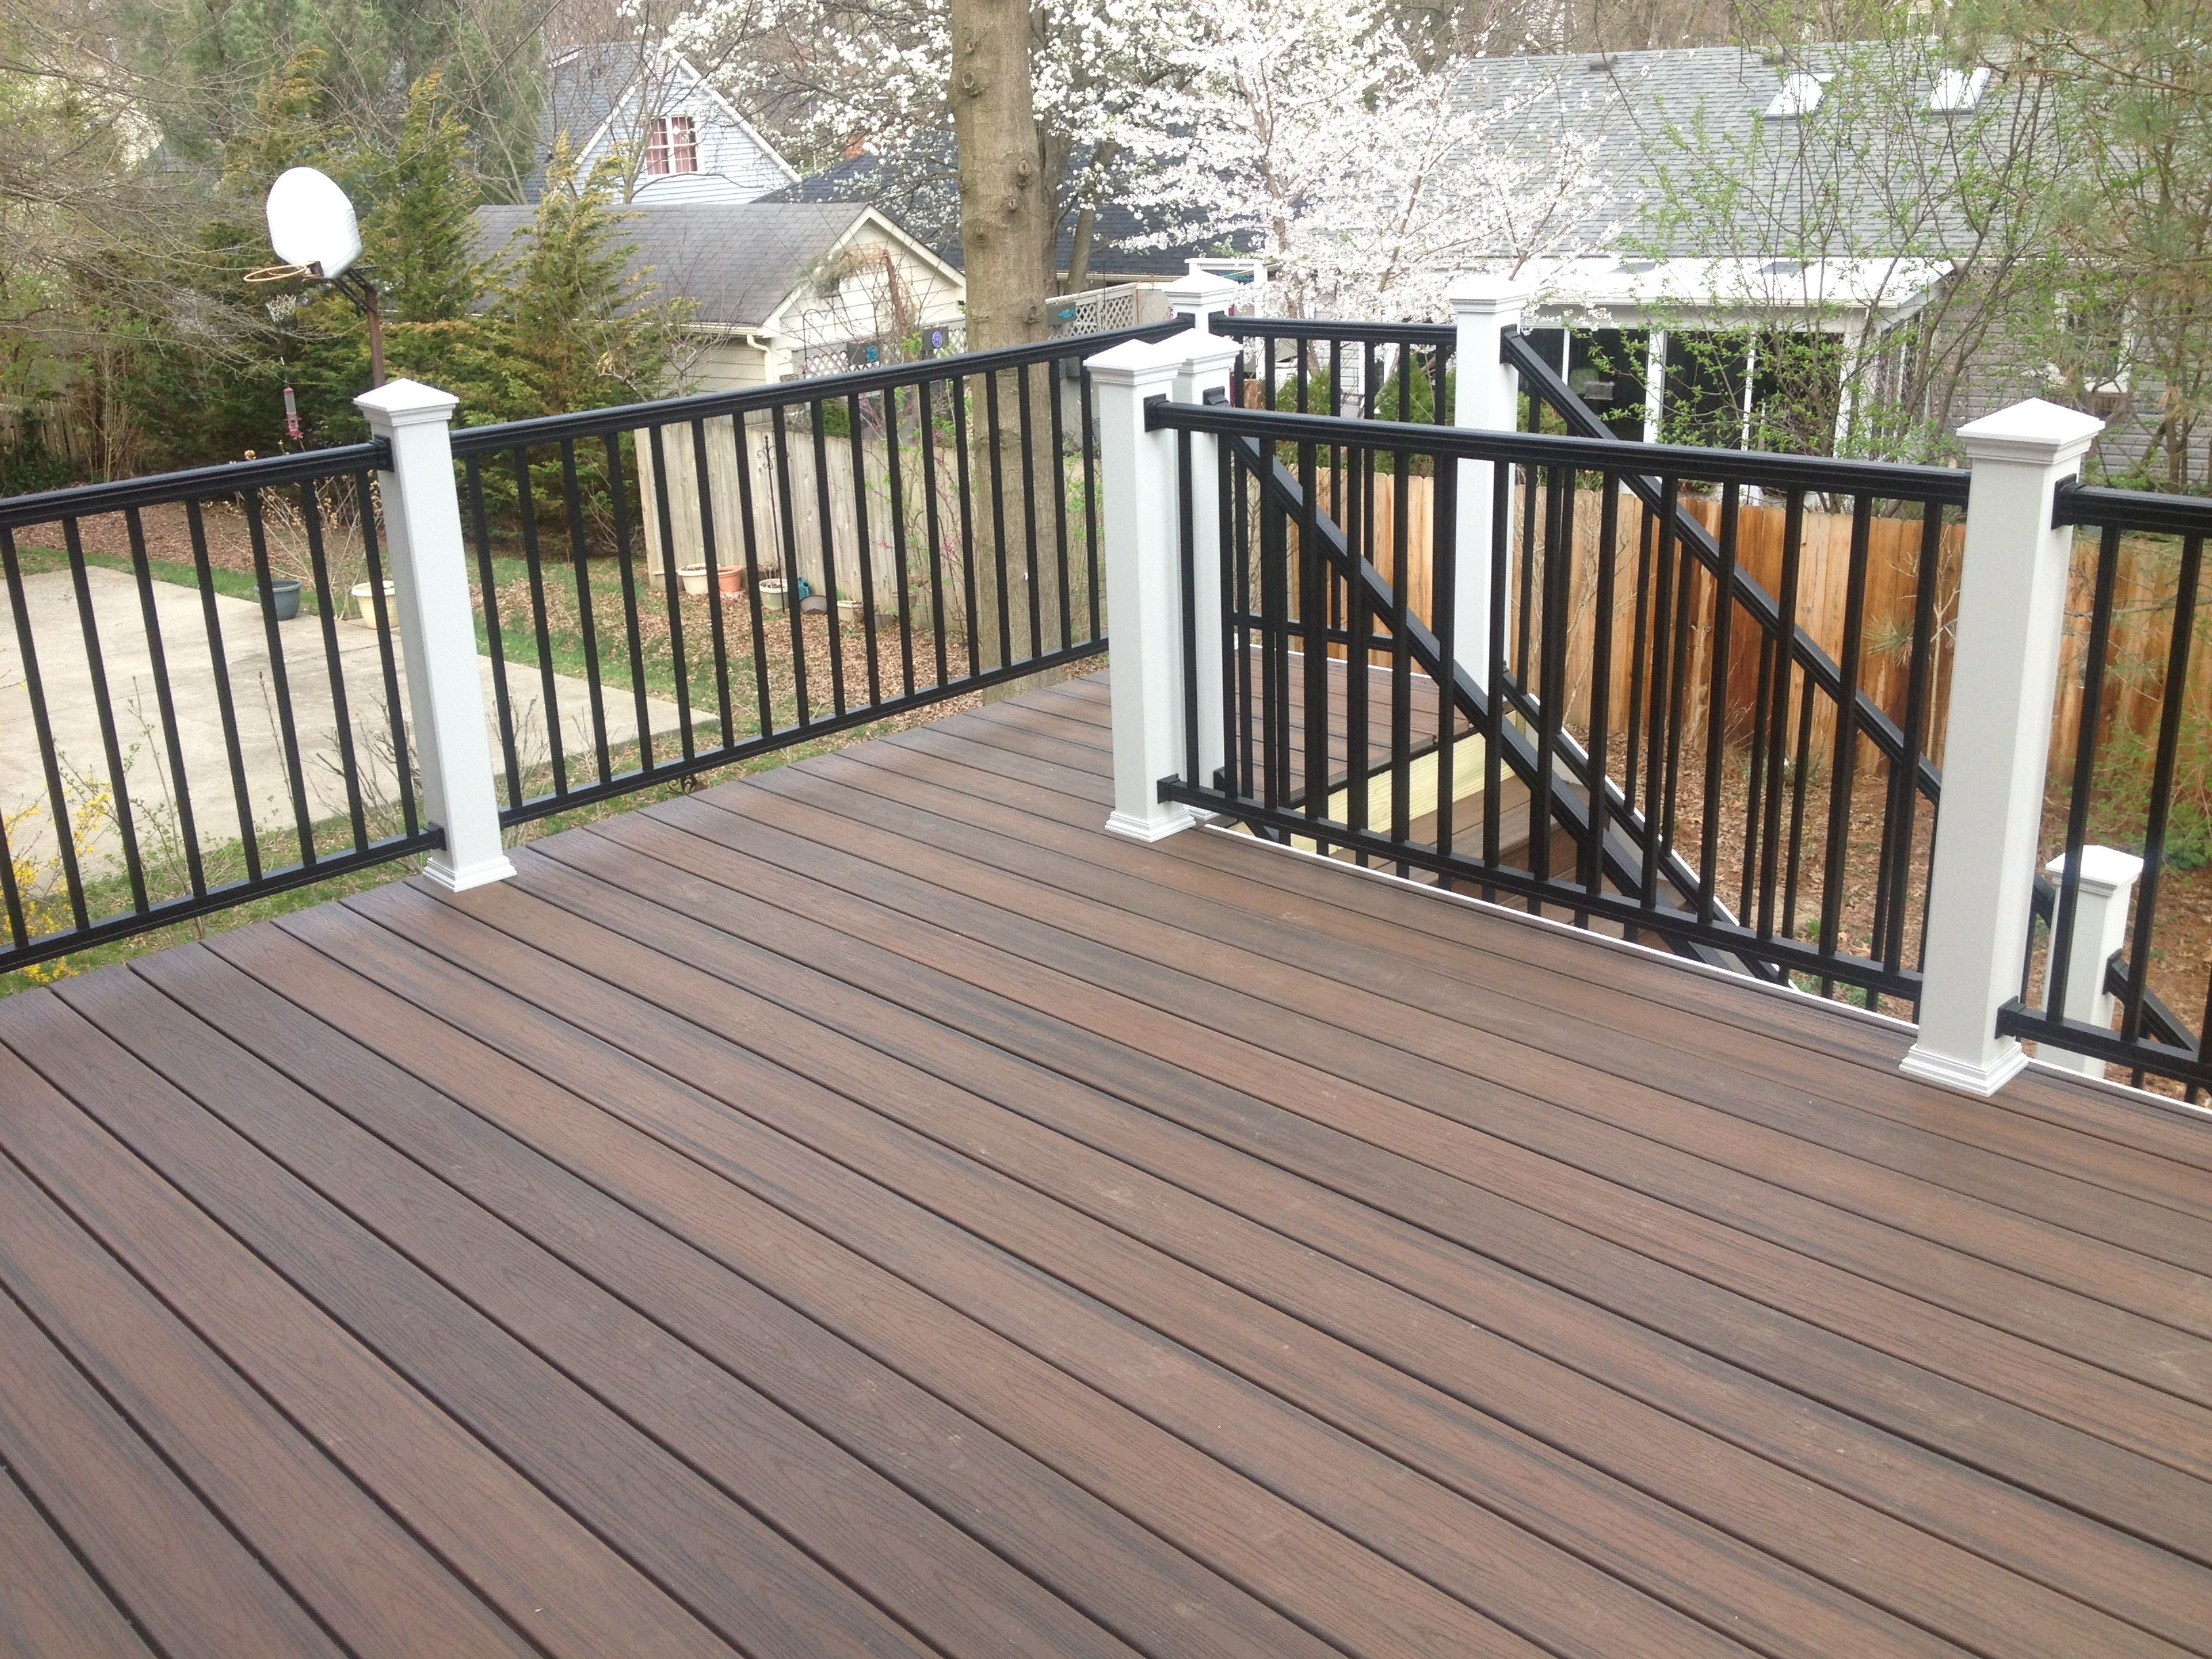 Best 10 aluminum deck railing ideas on pinterest metal deck trex spiced rum decking with white post sleeves and black aluminum rails look at patio railingwhite decktrex baanklon Gallery